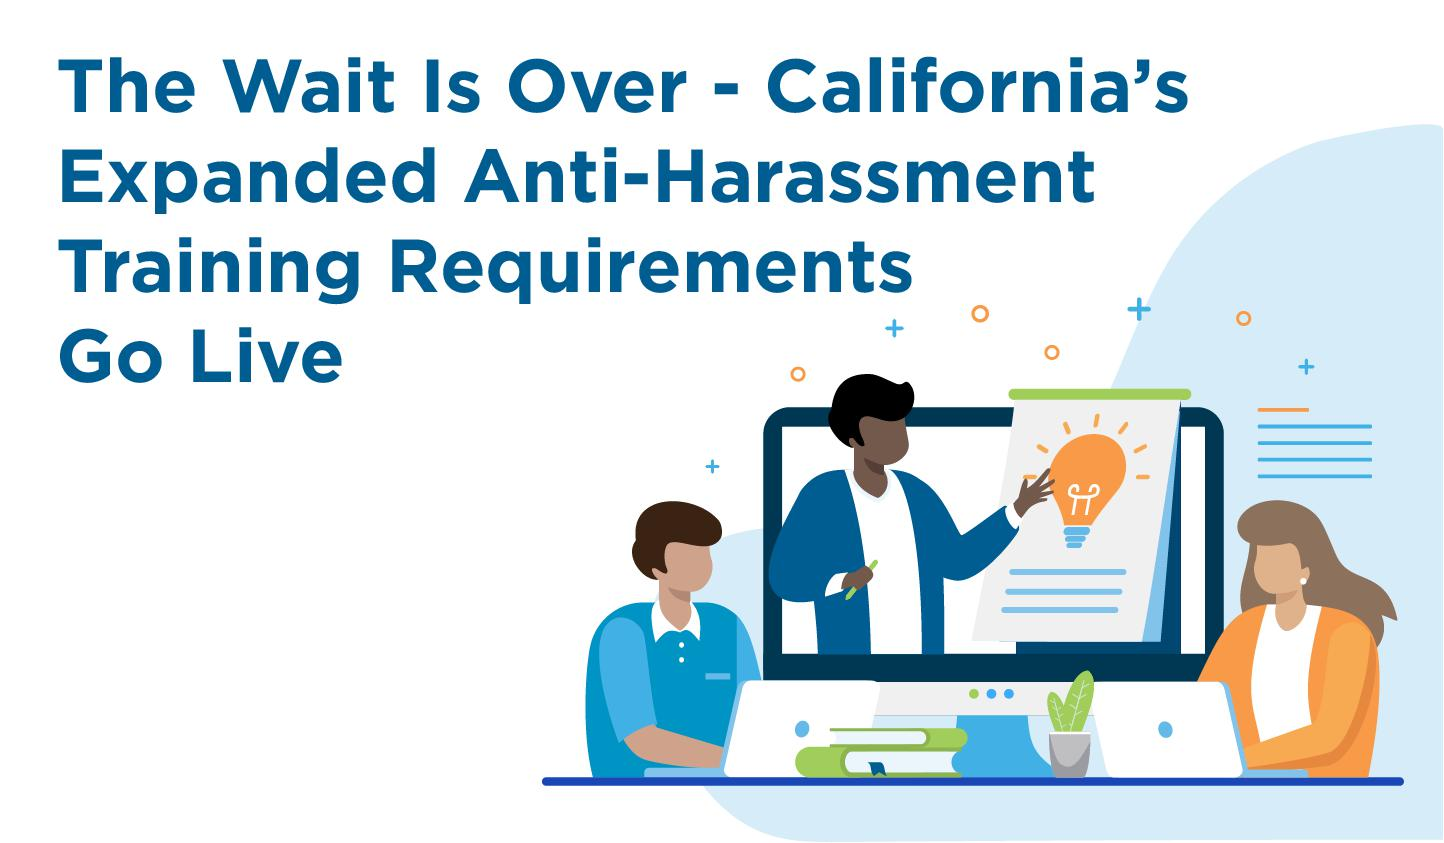 The Wait Is Over - California's Expanded Anti-Harassment Training Requirements Go Live